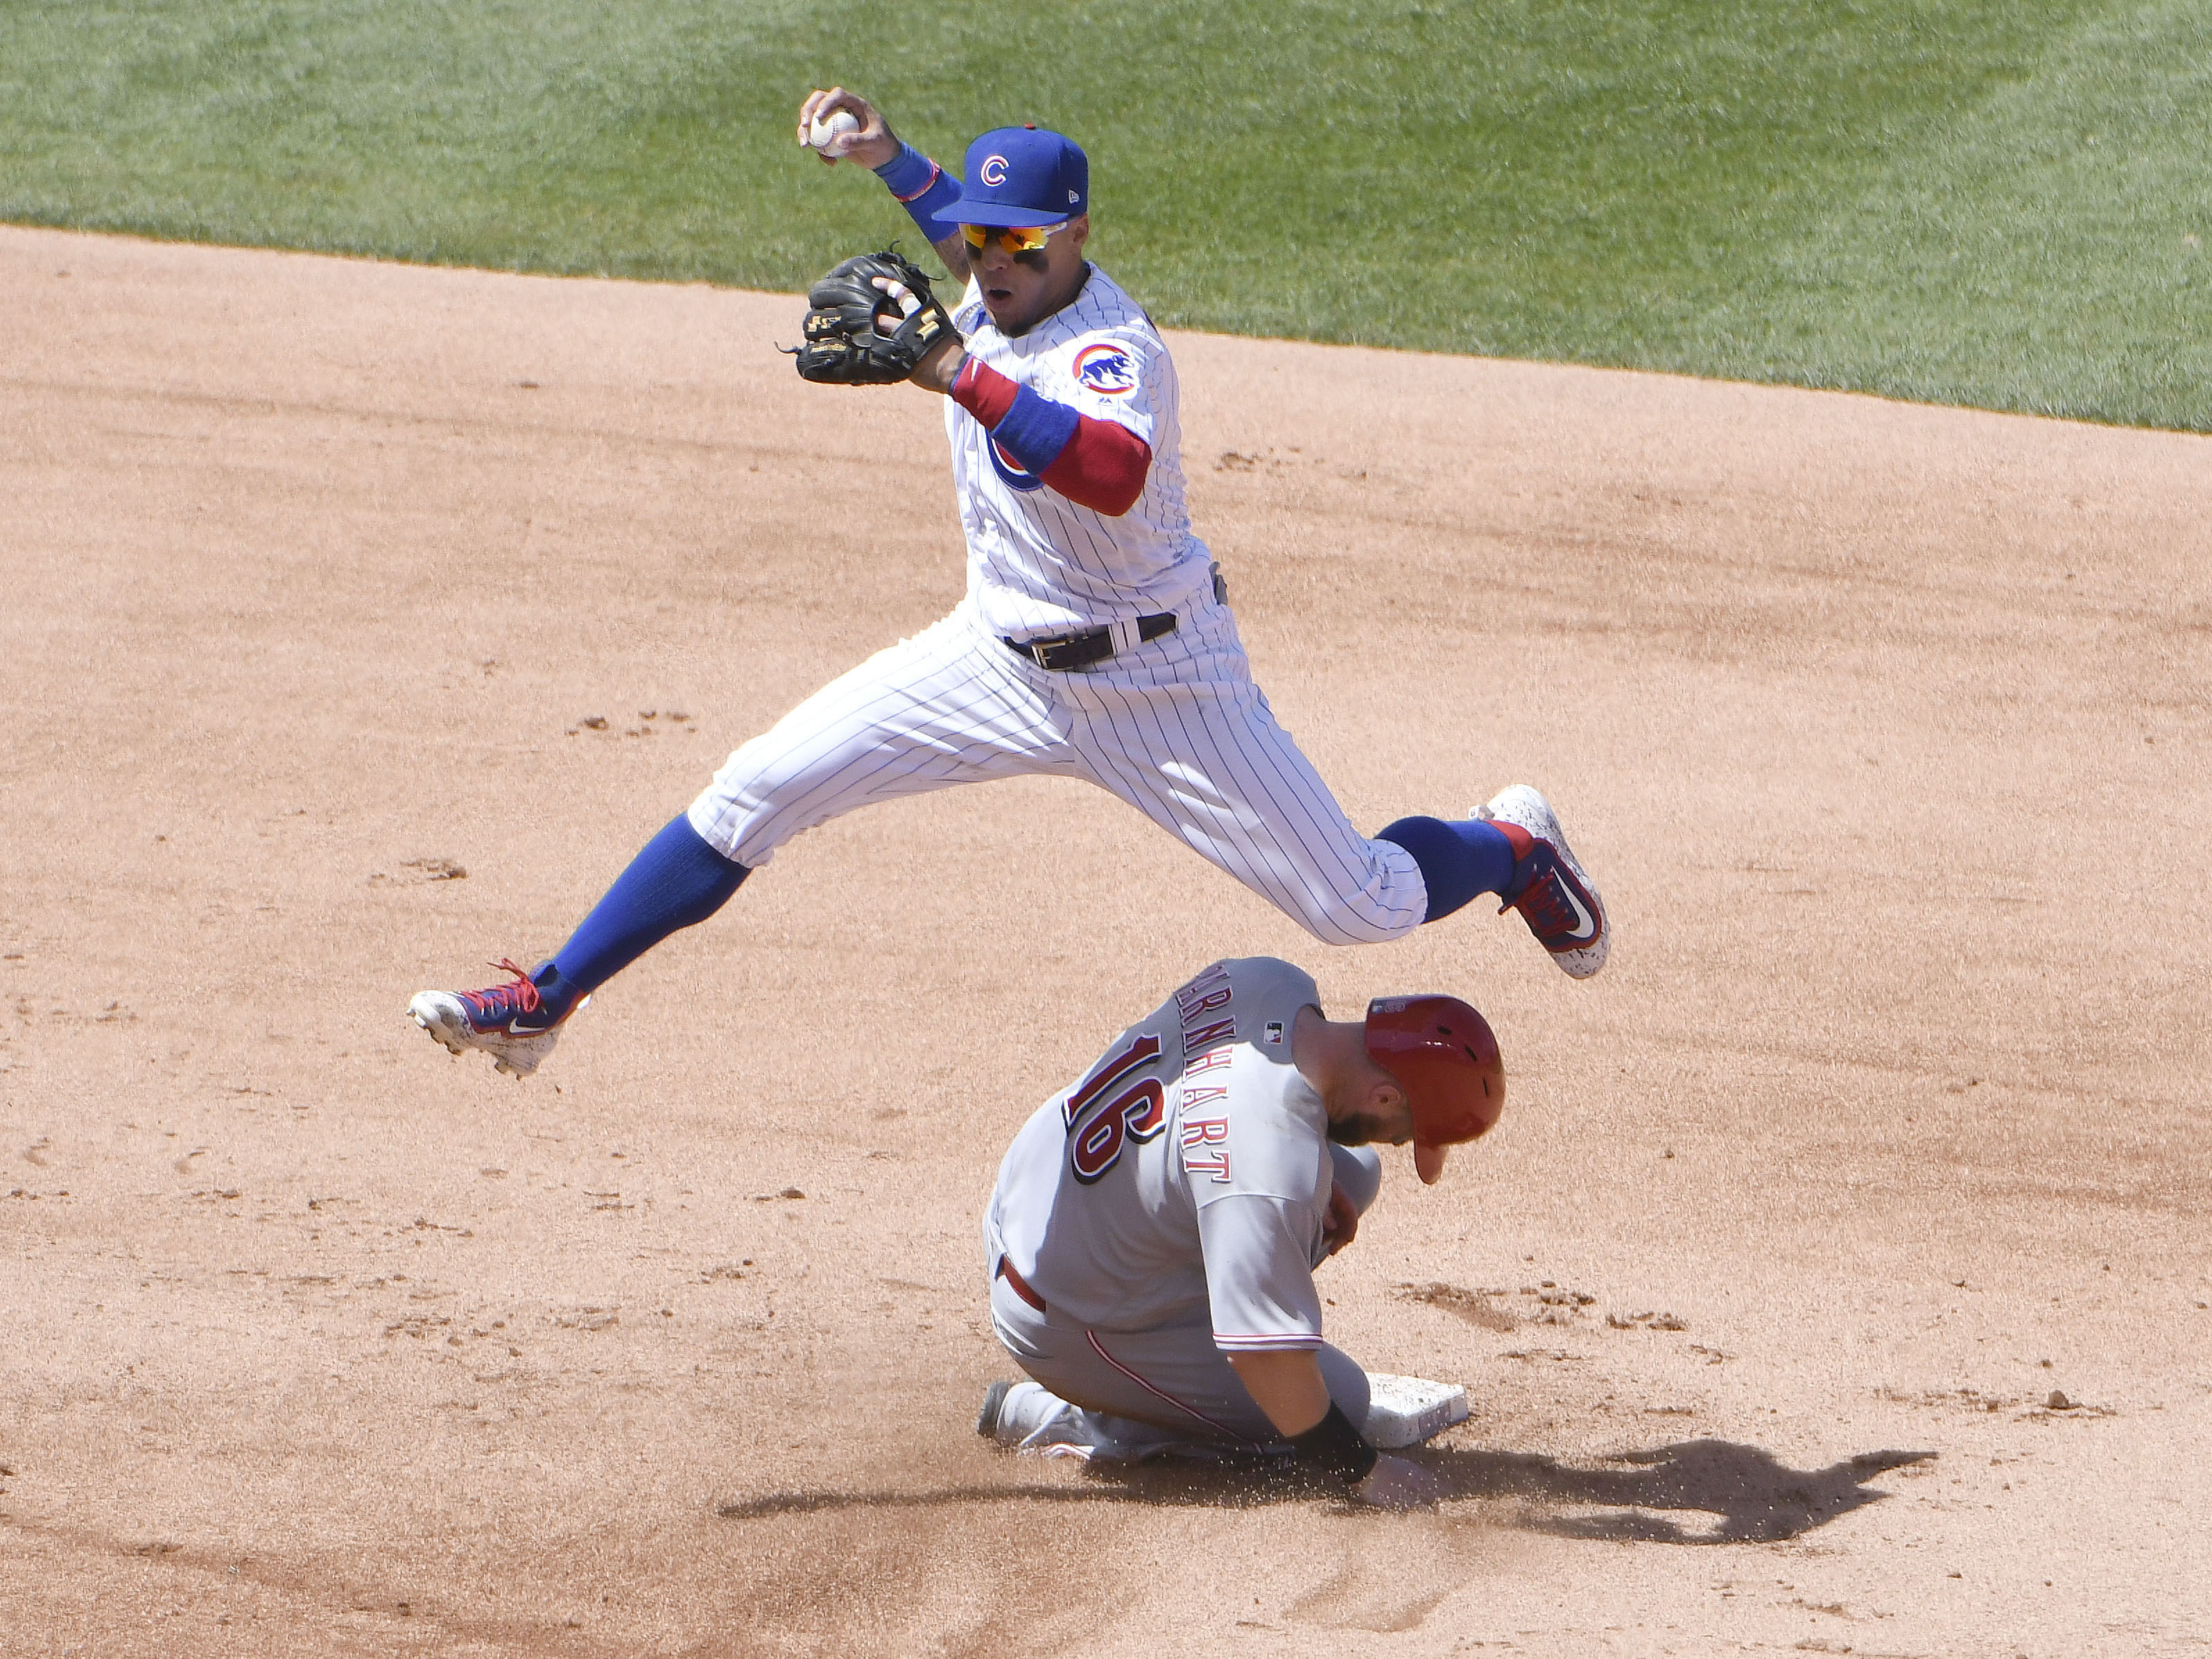 Chicago Cubs: Does the presence of Happ make Baez expendable?